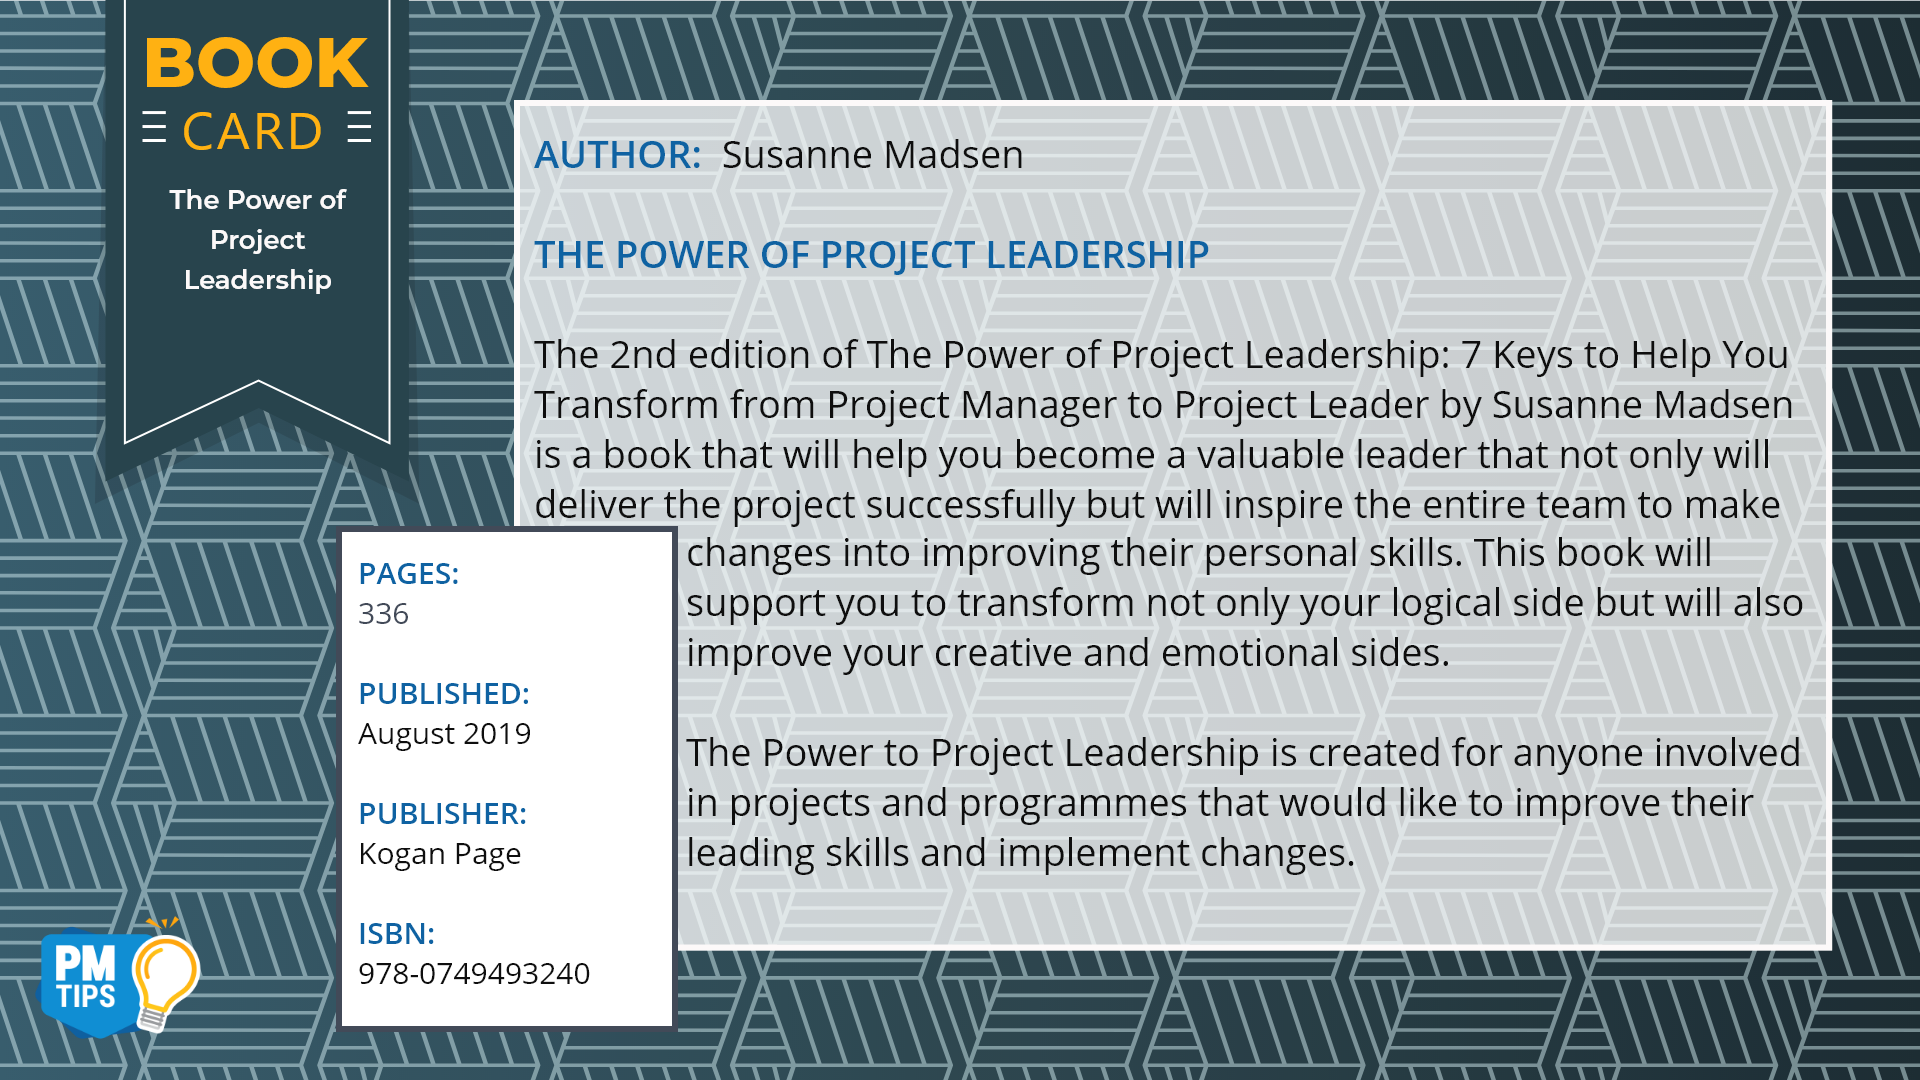 The Power of Project Leadership: 7 Keys to Help You Transform from Project Manager to Project Leader 2nd Edition